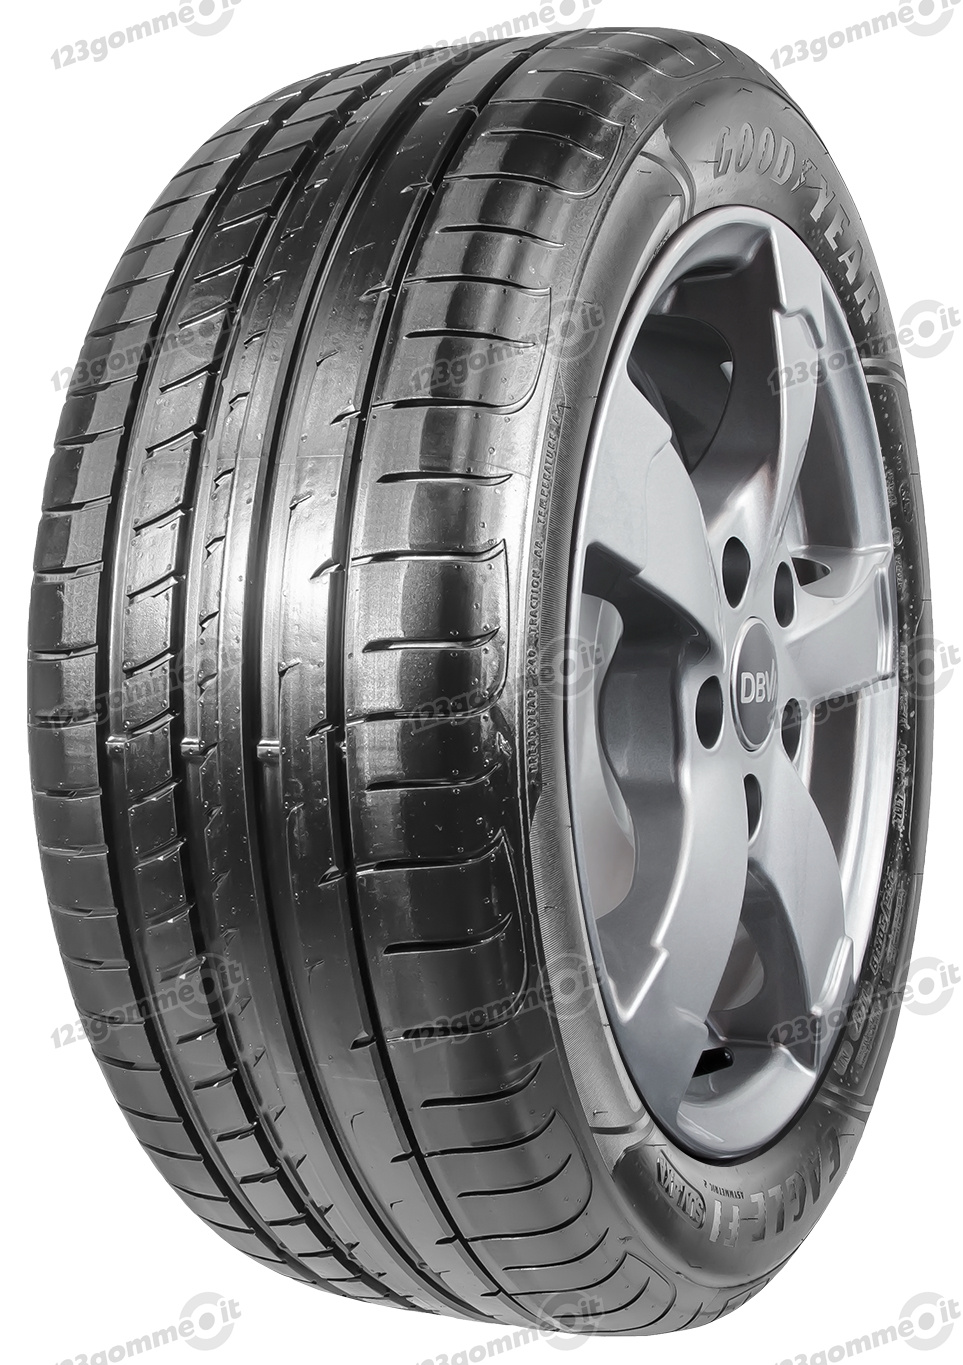 245/45 R18 100Y Eagle F1 Asymmetric XL FP  Eagle F1 Asymmetric XL FP